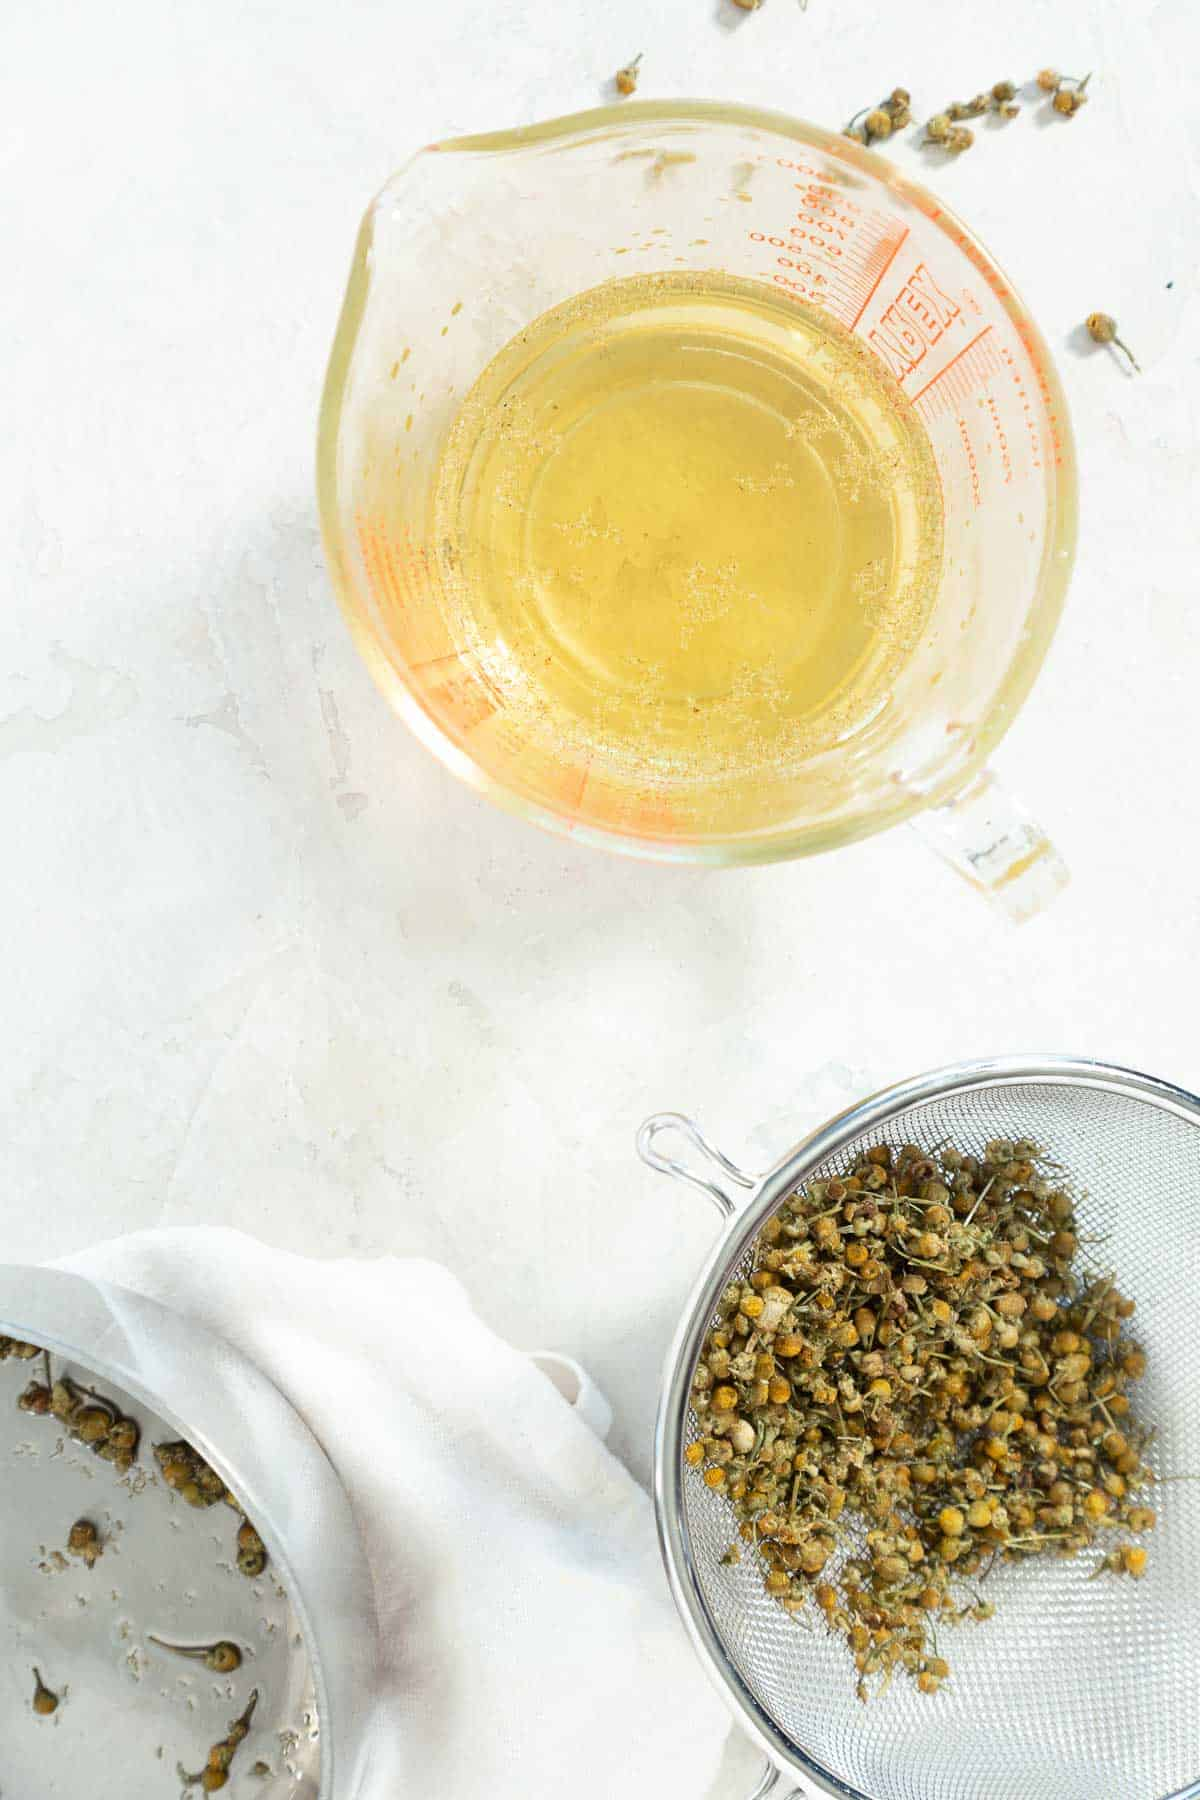 Chamomile syrup in a measuring cup with dried flowers in a mesh sieve on the side